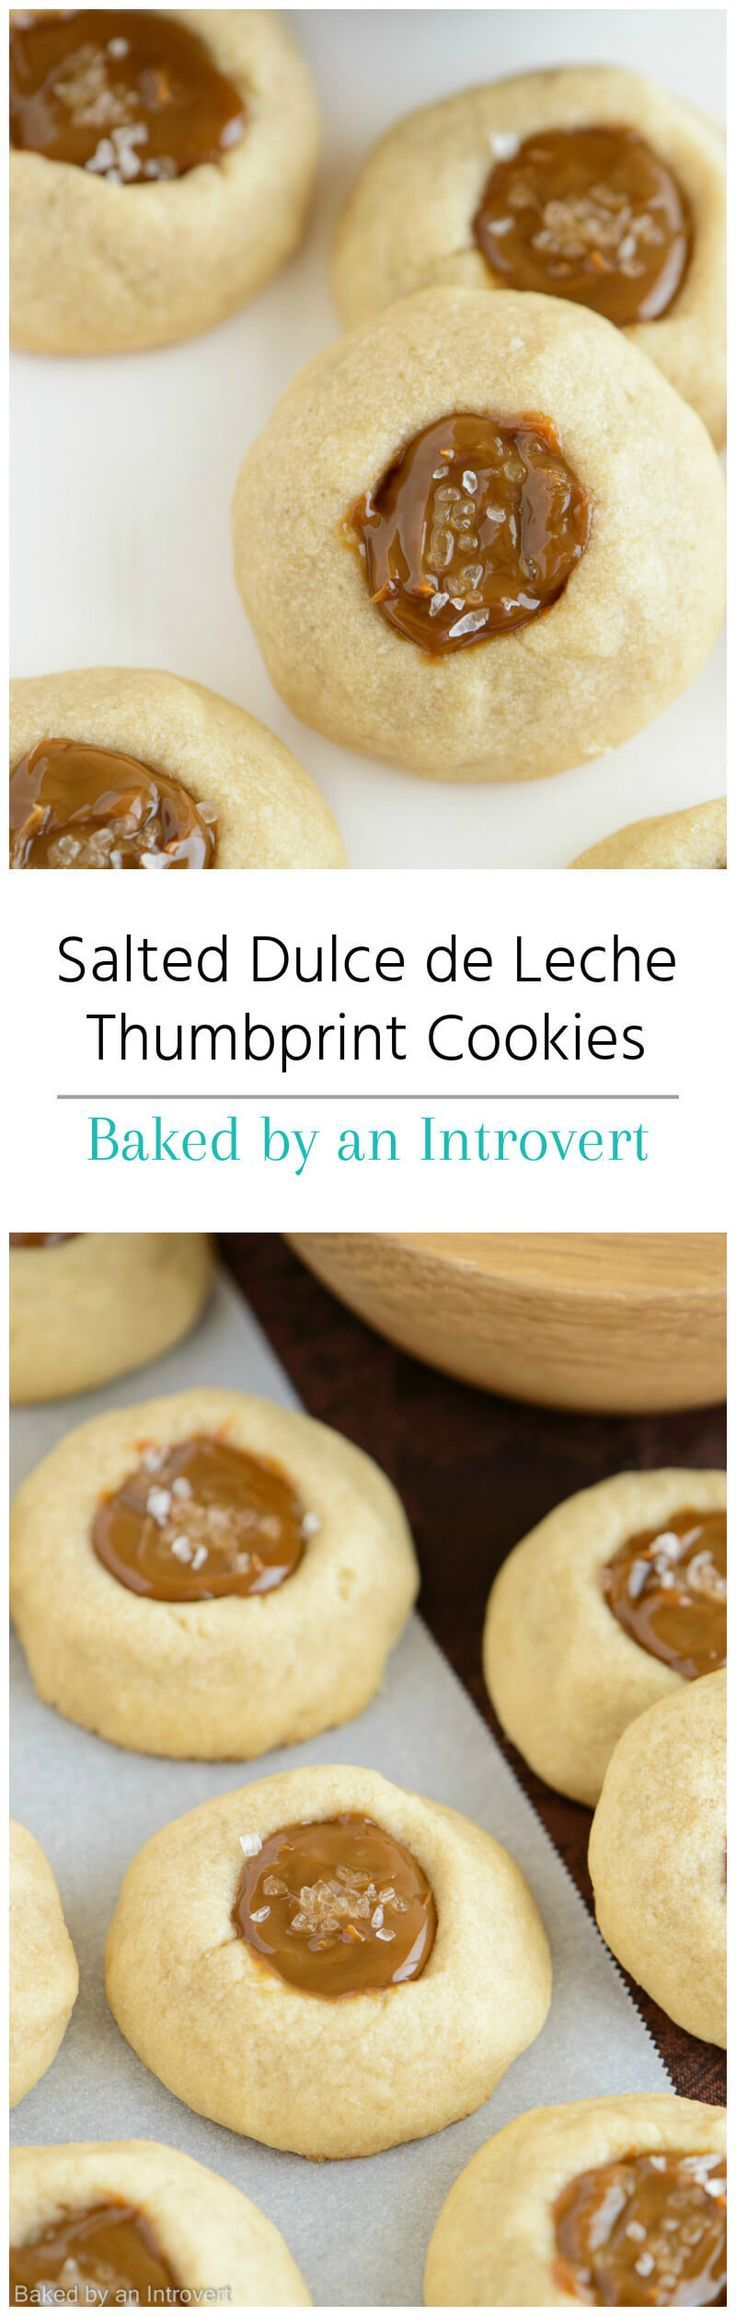 Salted Dulce de Leche Thumbprint Cookies Recipe from http://bakedbyanintrovert.com